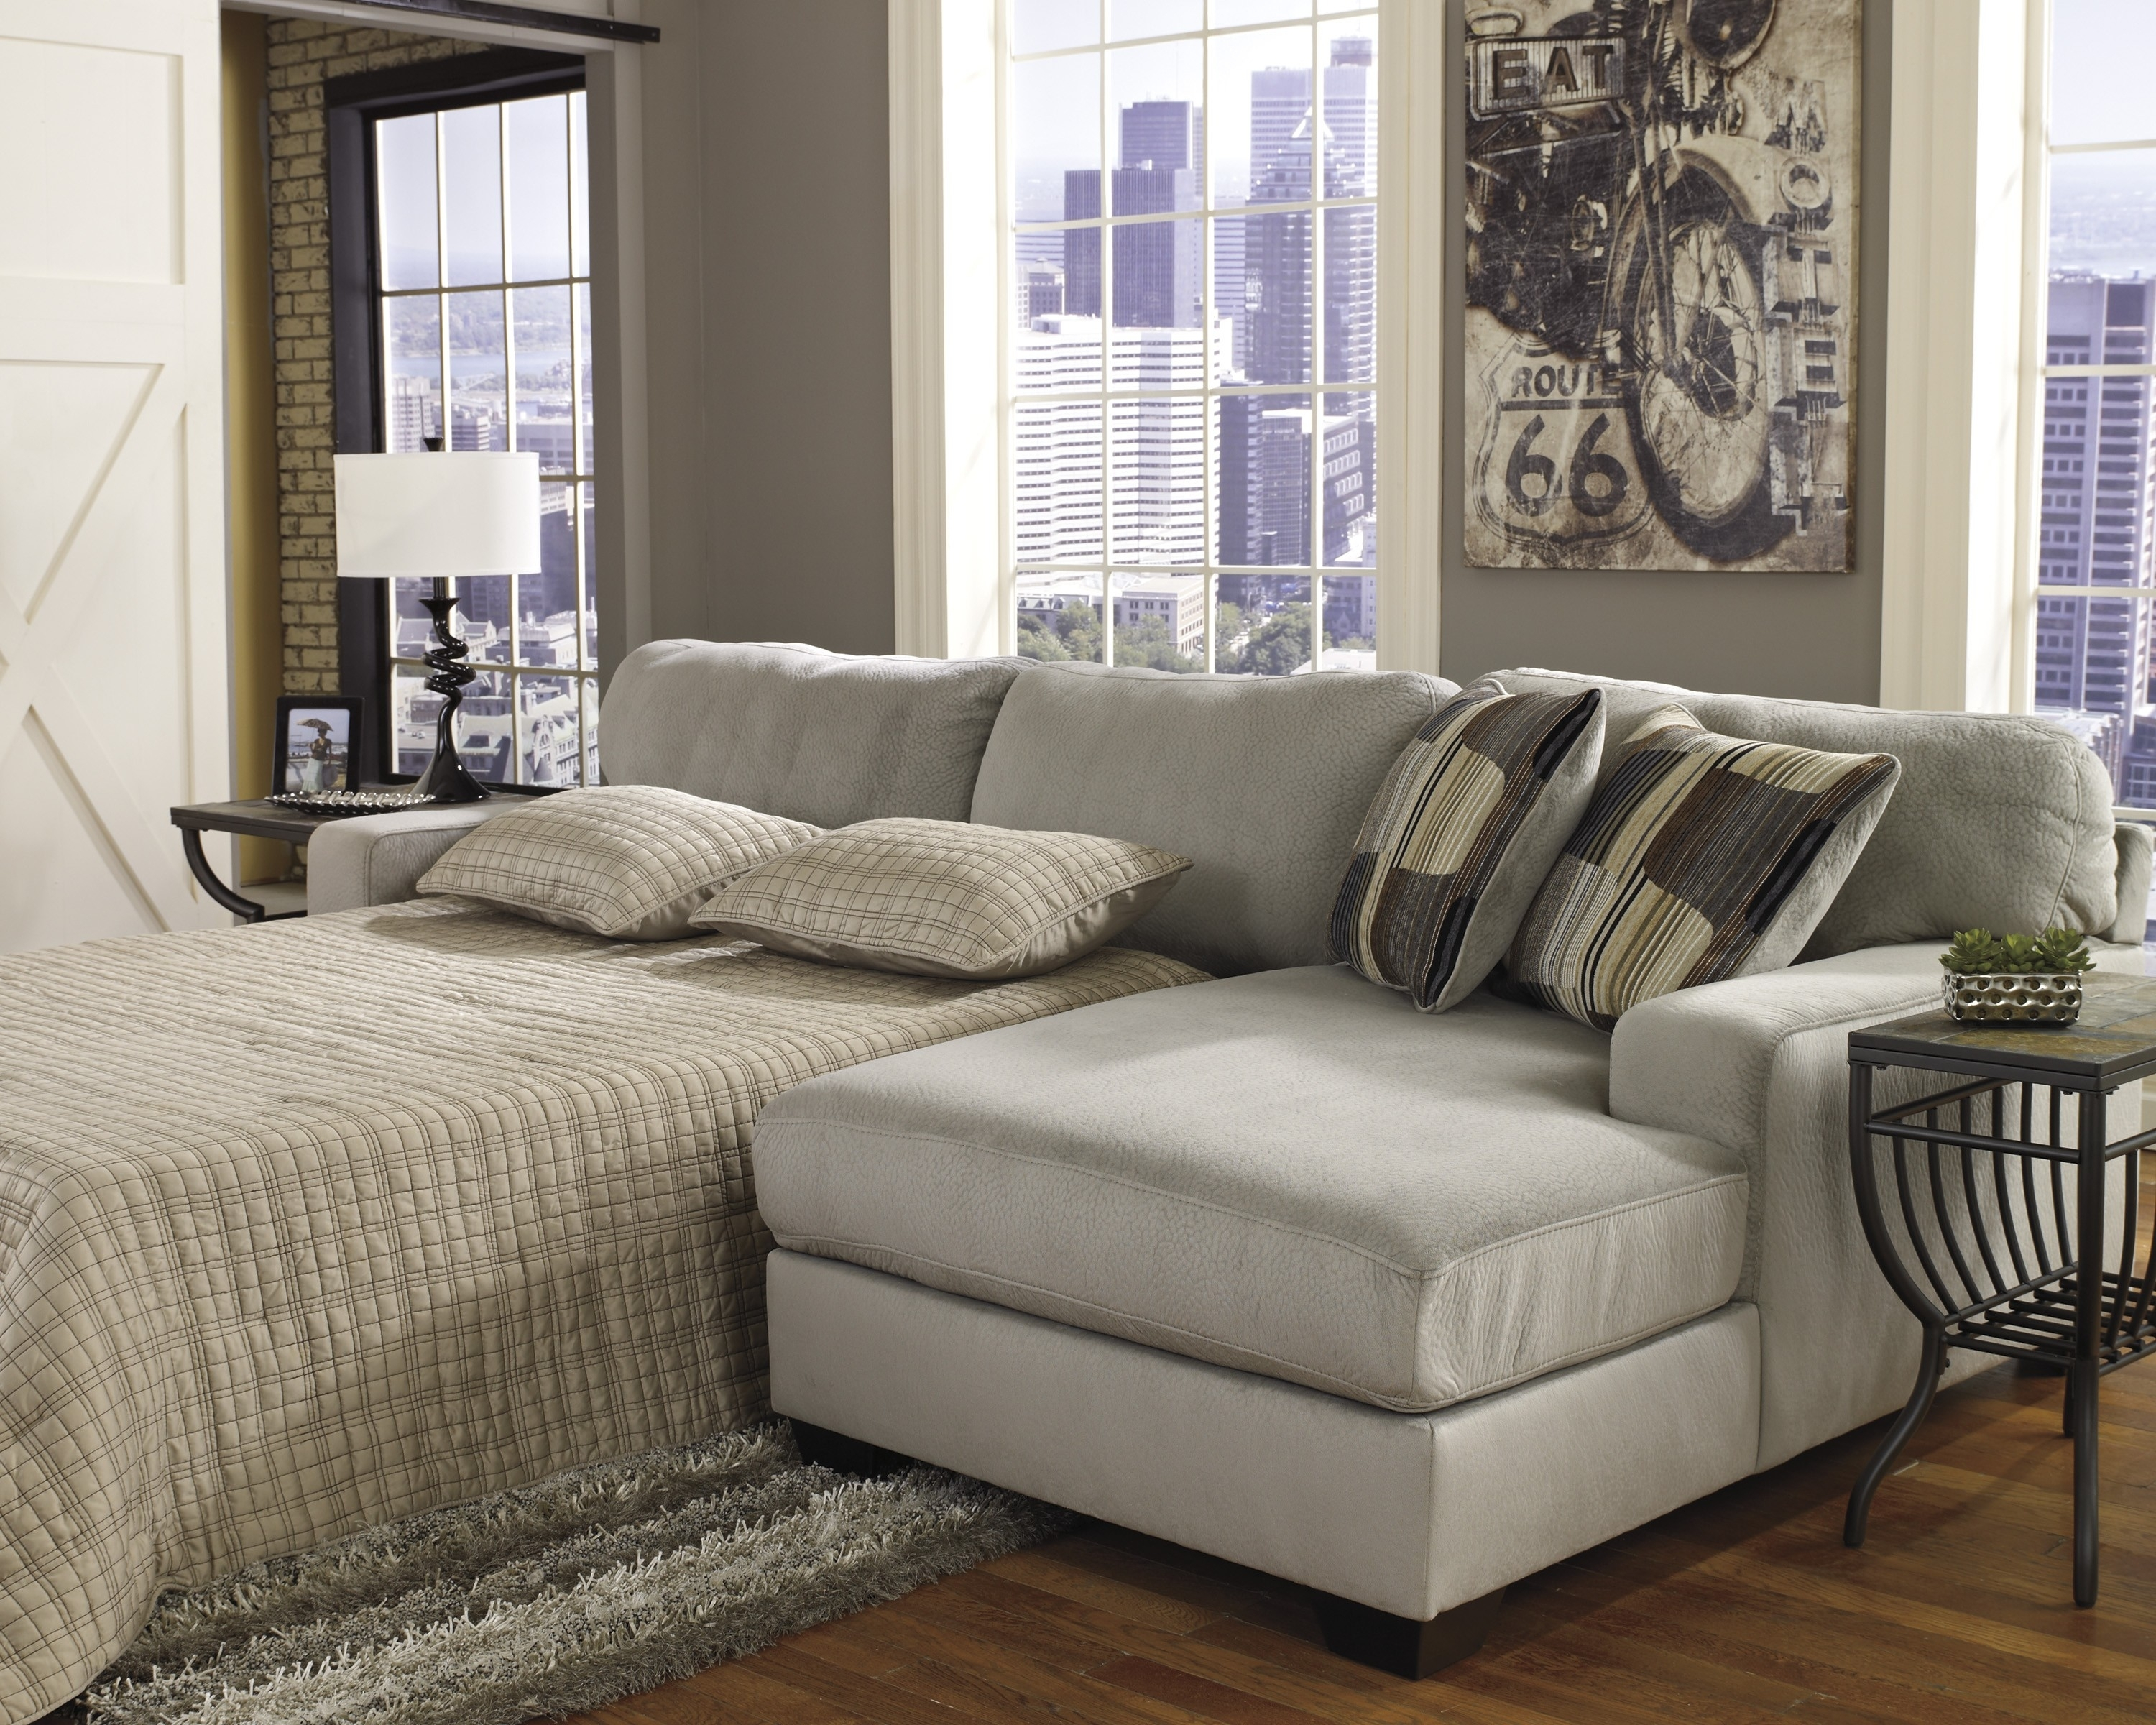 Sofa : Magnificent Sectional Sofa Queen Bed Great Sleeper Sectionals Throughout Adjustable Sectional Sofas With Queen Bed (View 8 of 10)